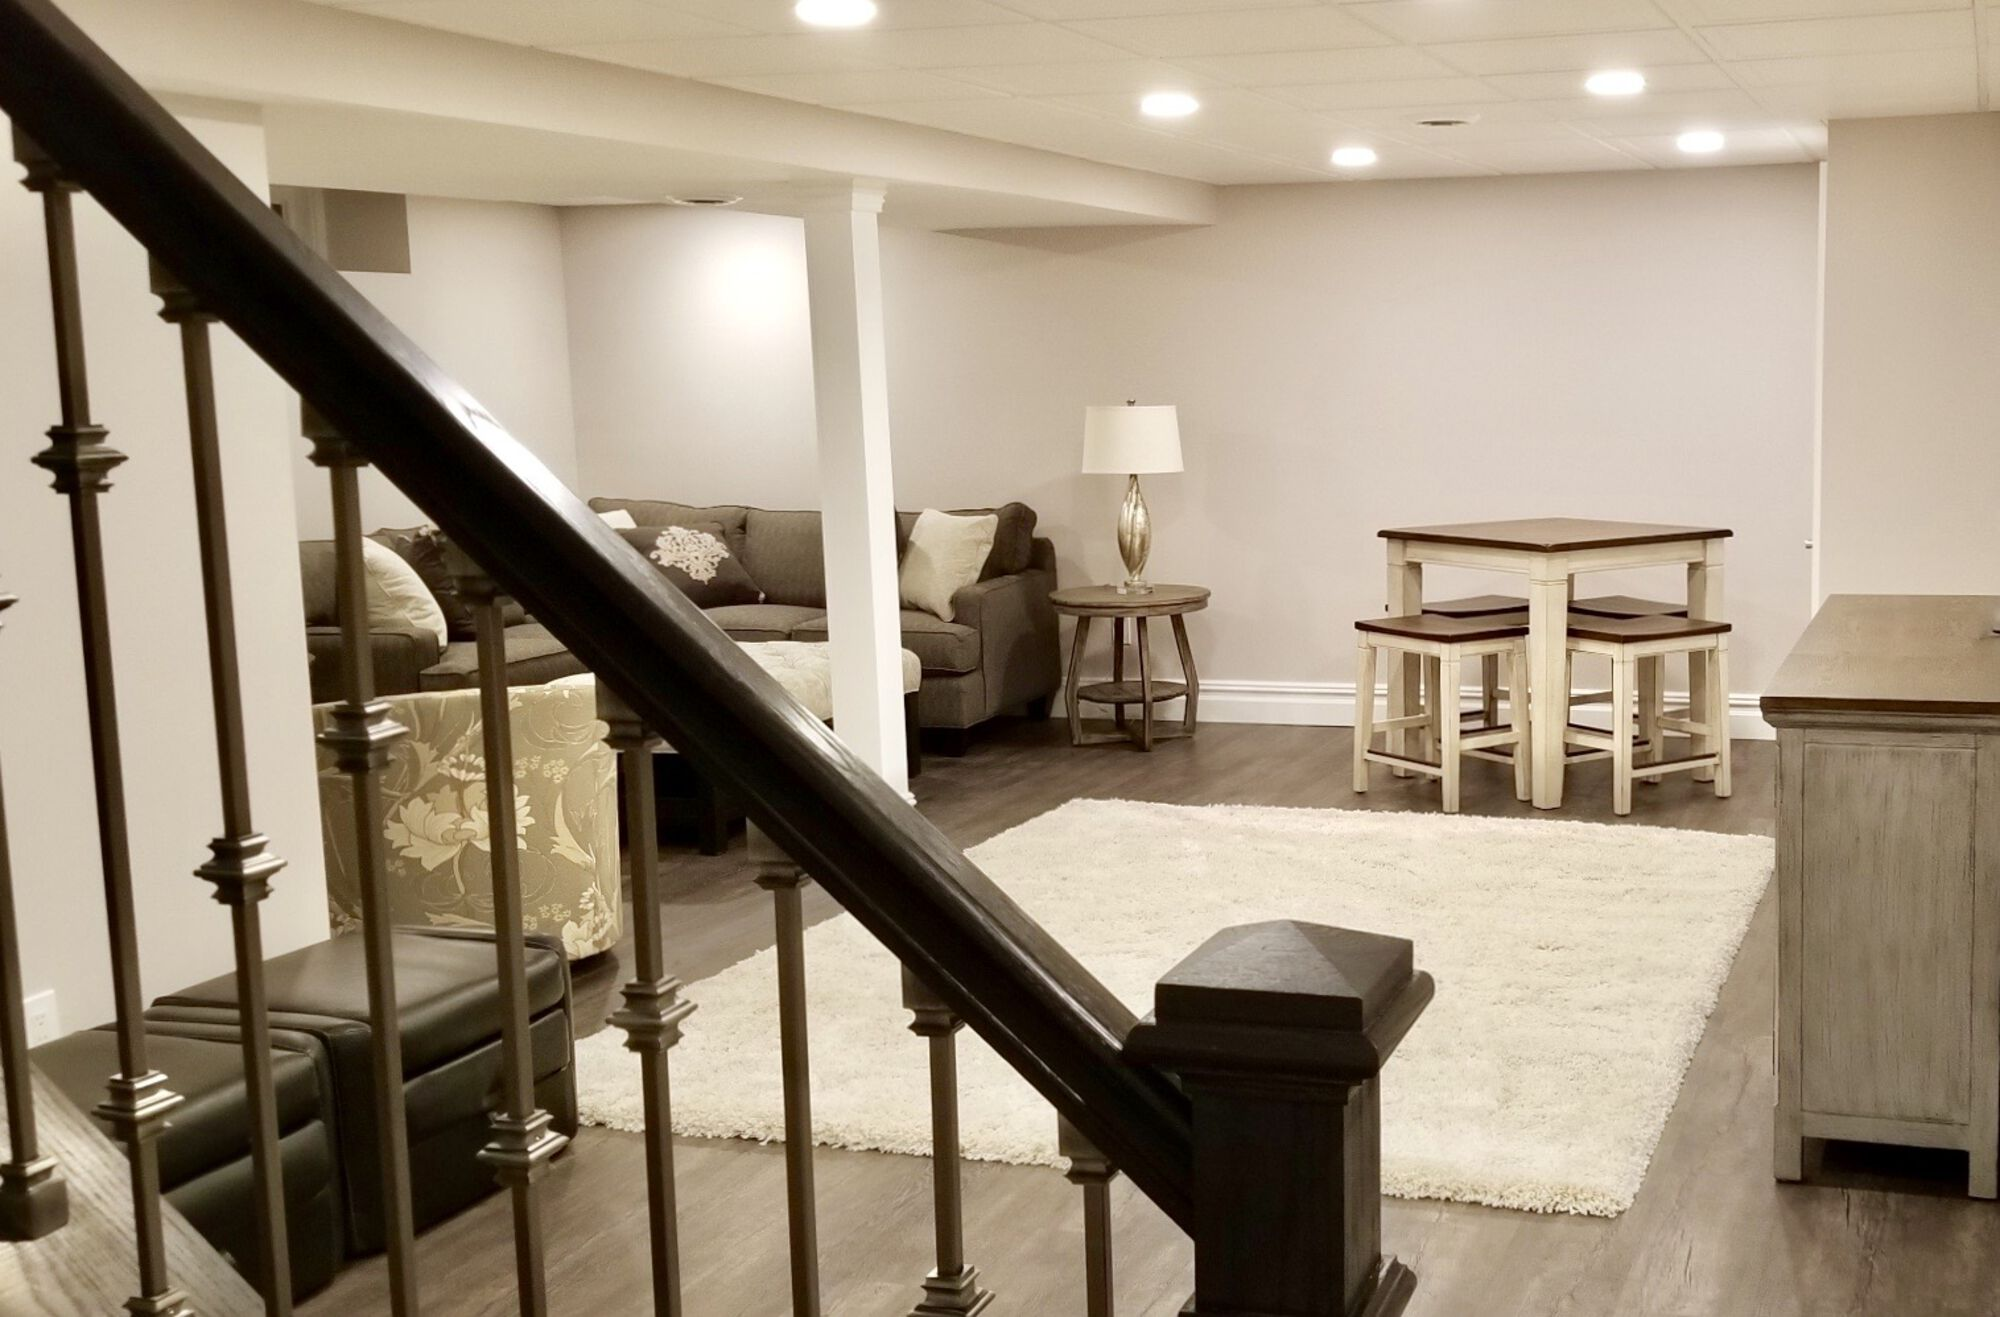 Basement with Mold and Mildew Resistant Drywall, Vinyl Plank Flooring, Acoustic Ceiling, Wood and Metal Rail, LED Lighting In East Brunswick, Middlesex County NJ